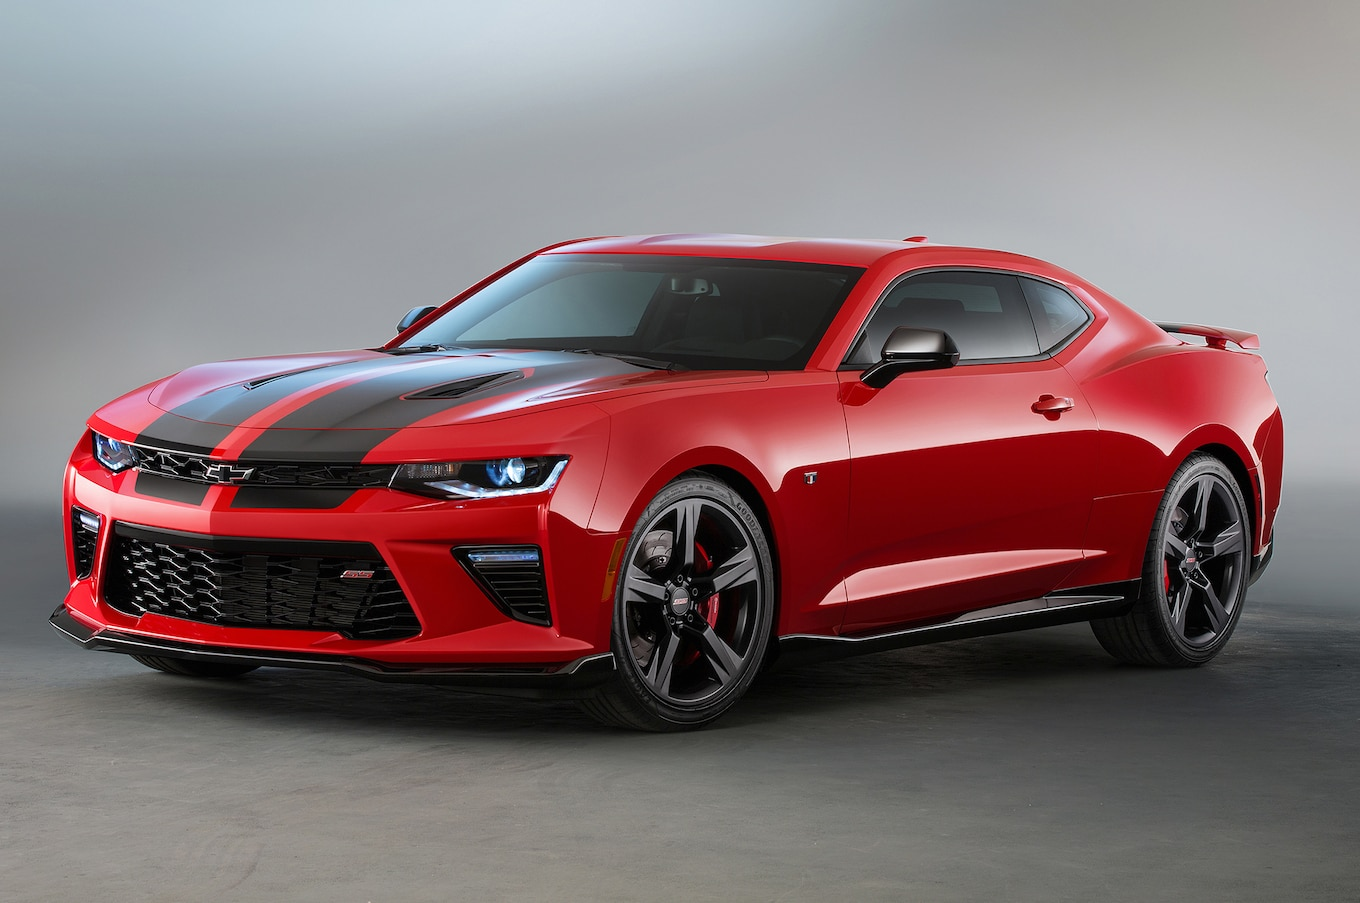 Les Chevrolet Camaro SS 2016 Vtues Des Ensembles Red